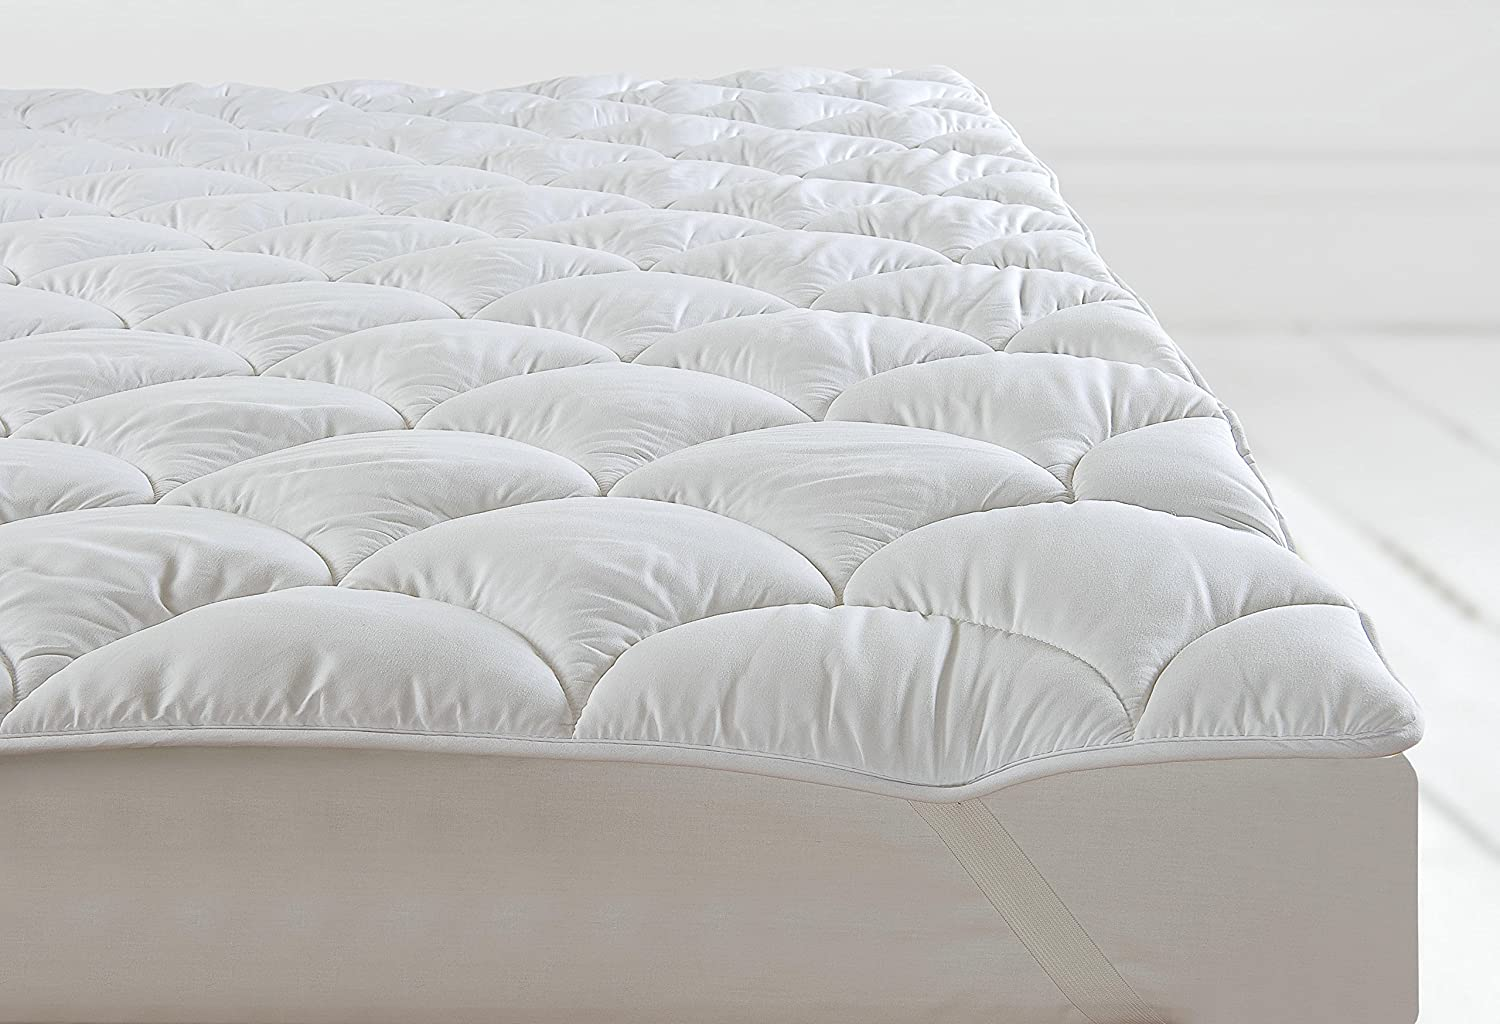 Mattress Pad Downlite Lyocellpoly Knit Mattress Pad Iso